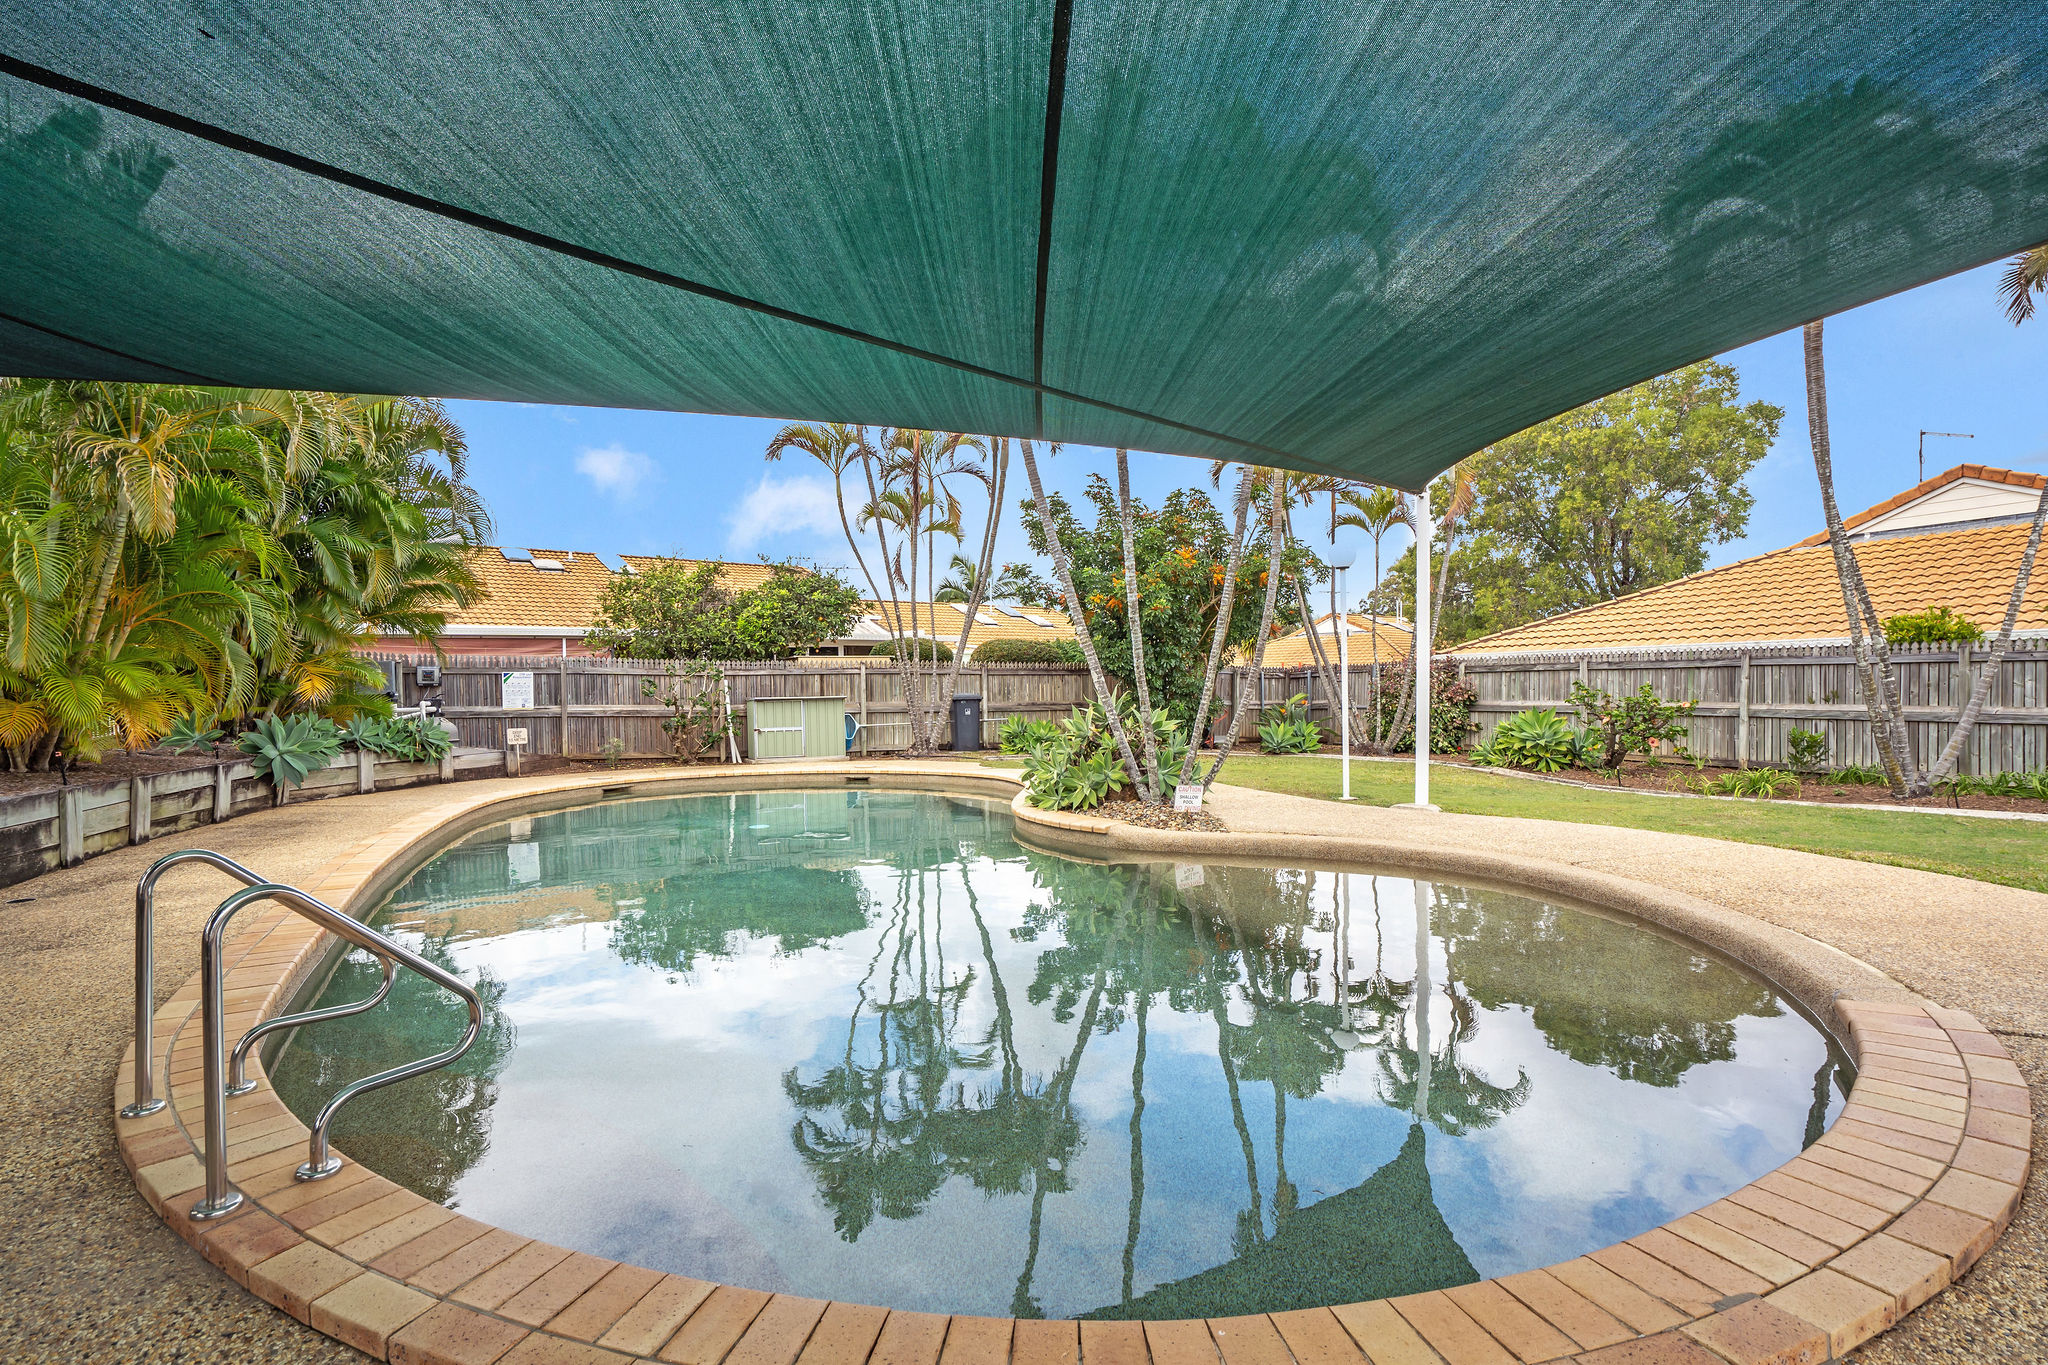 36/16 Stay Pl, Carseldine, QLD 4034